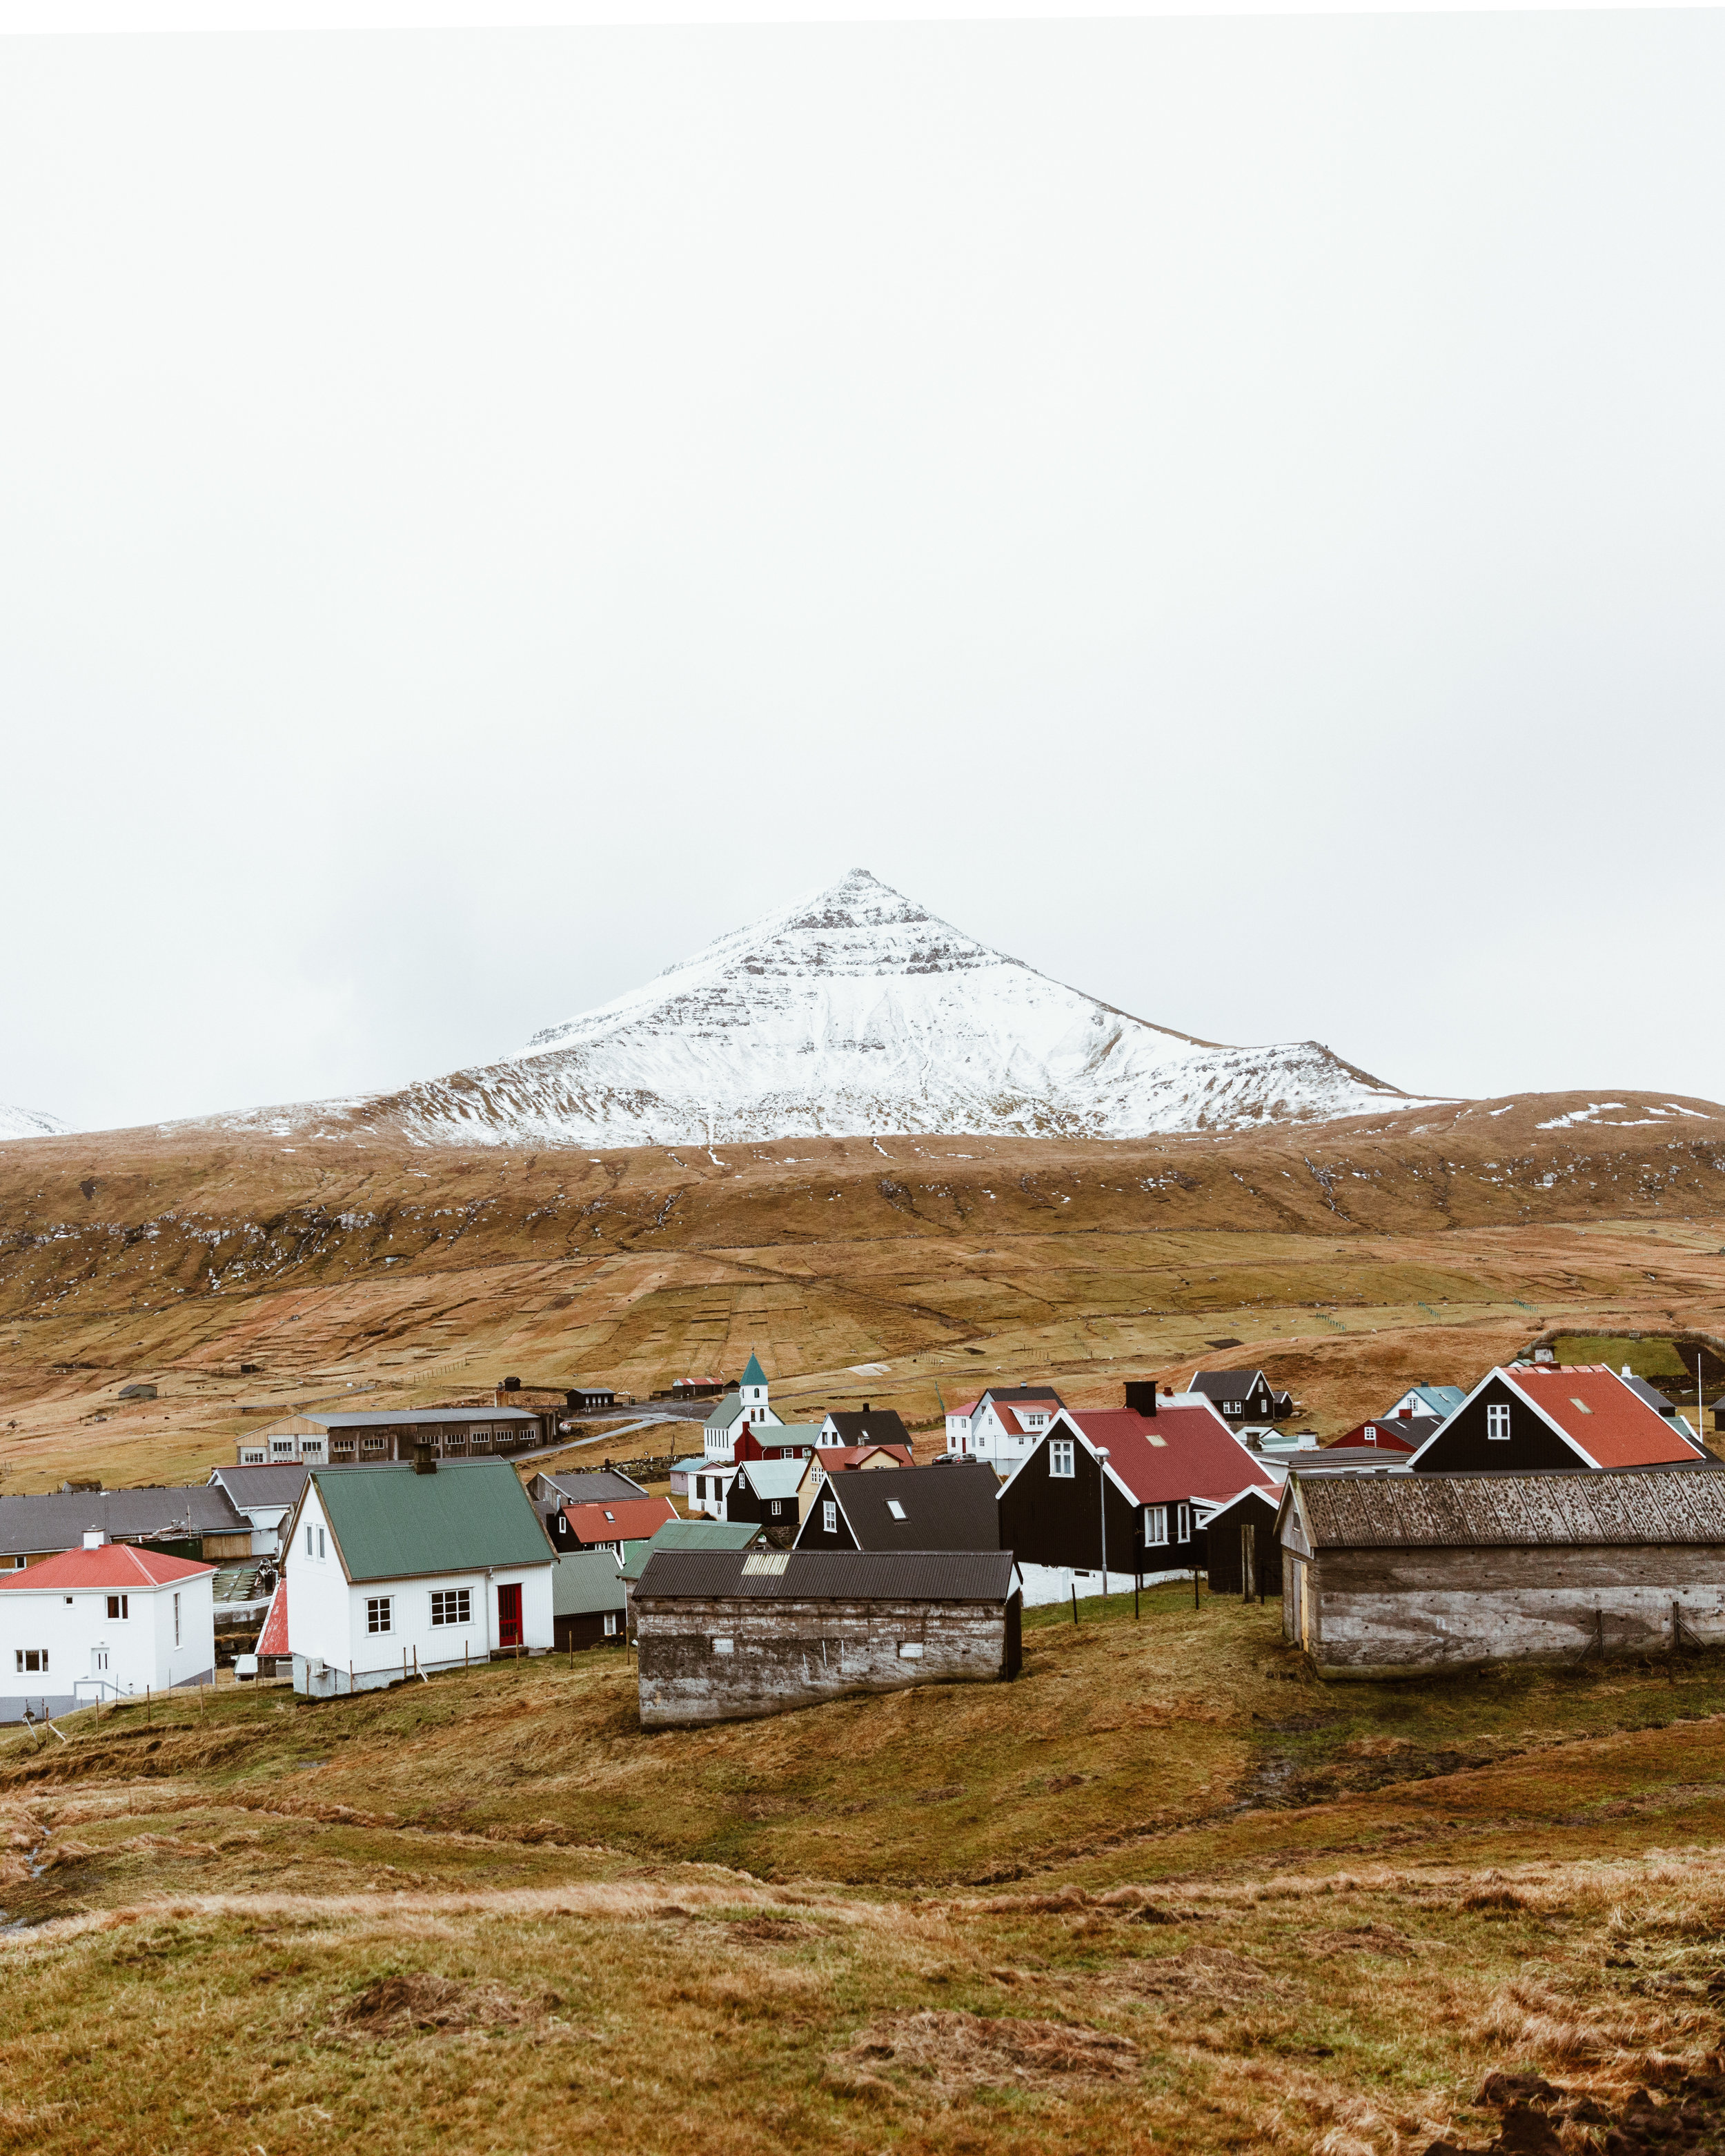 Visit Faroe Islands - I had the opportunity to work on a content based social media campaign with the tourism board of the Faroe Islands. I went around the islands that make up of the Faroe Islands and I was truly mind blown by the beauty of it all! Click the image to see a bit more of my experience!